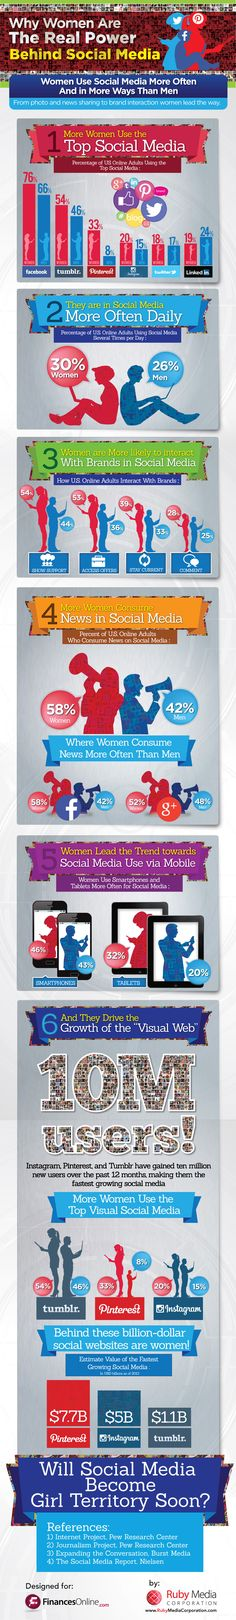 Women dominate every social media network except one